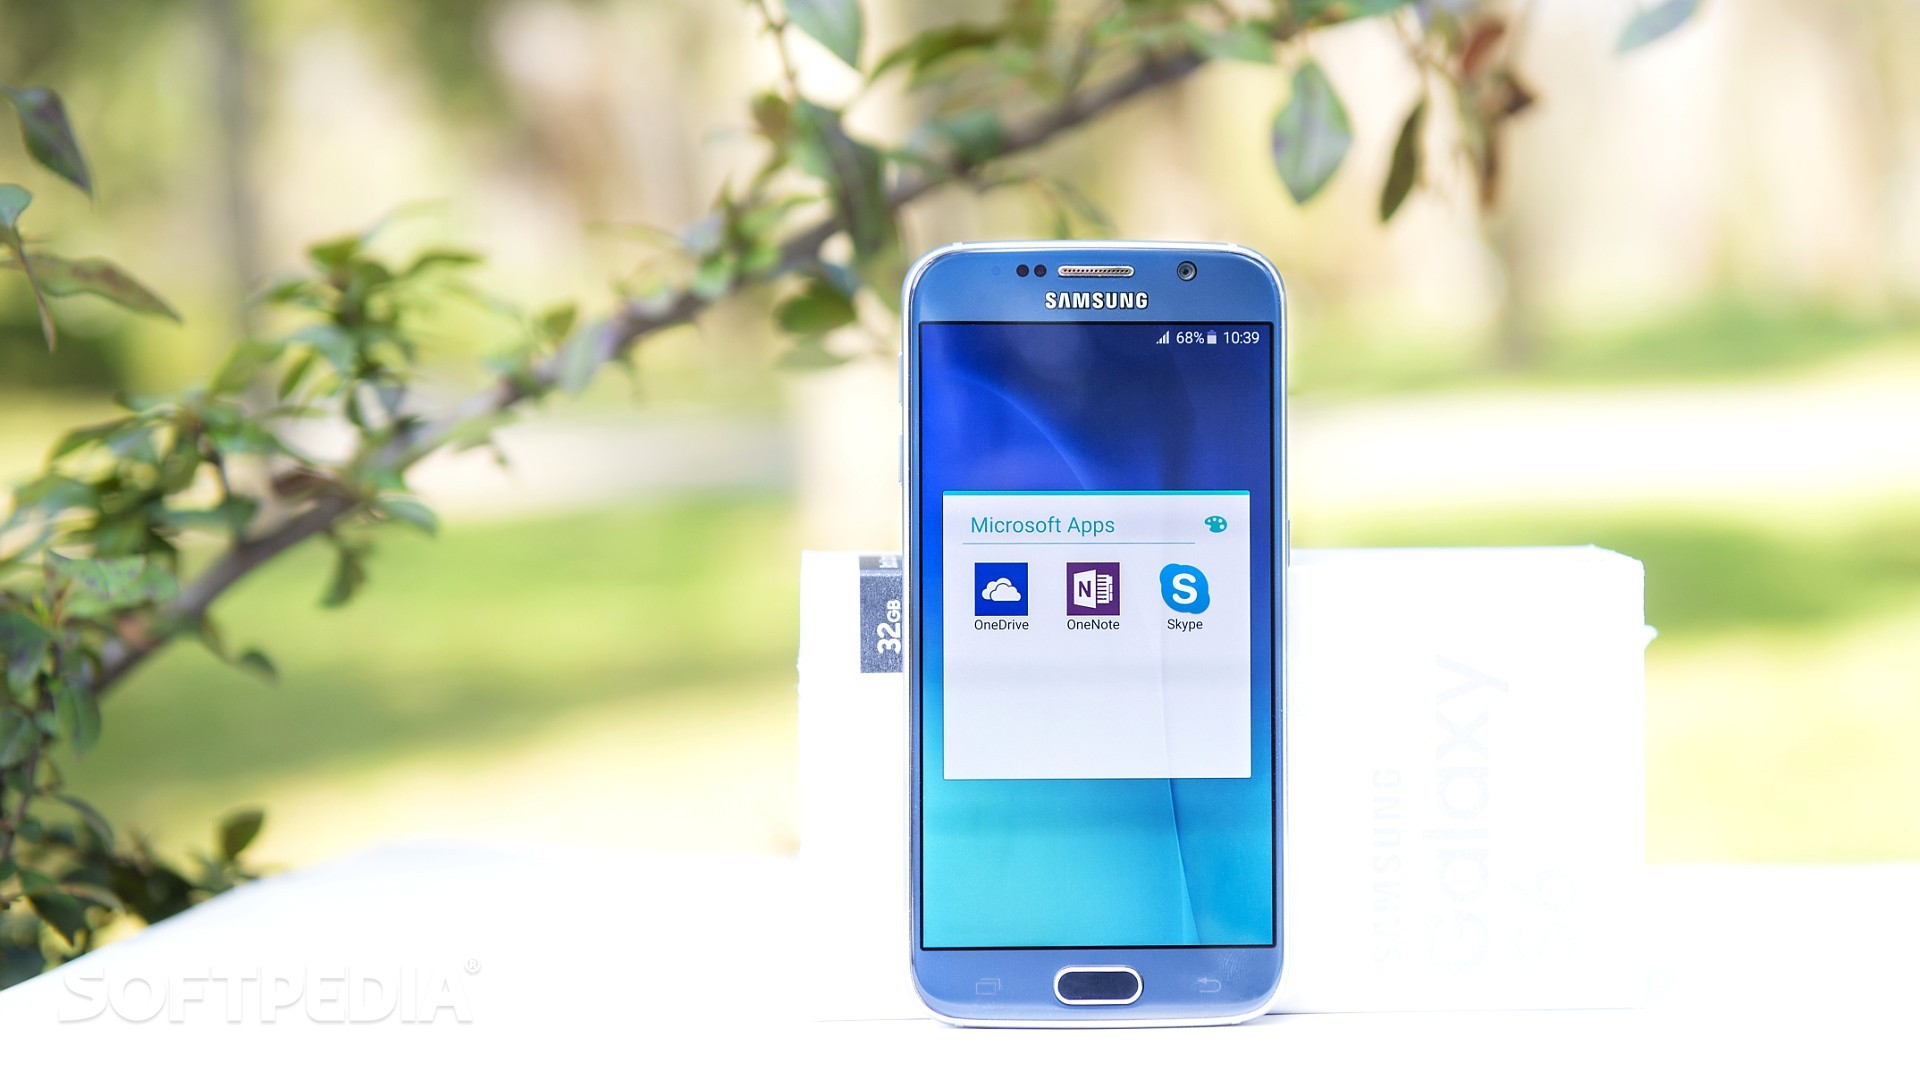 AT&T and Verizon Remove Microsoft Apps from Galaxy S6